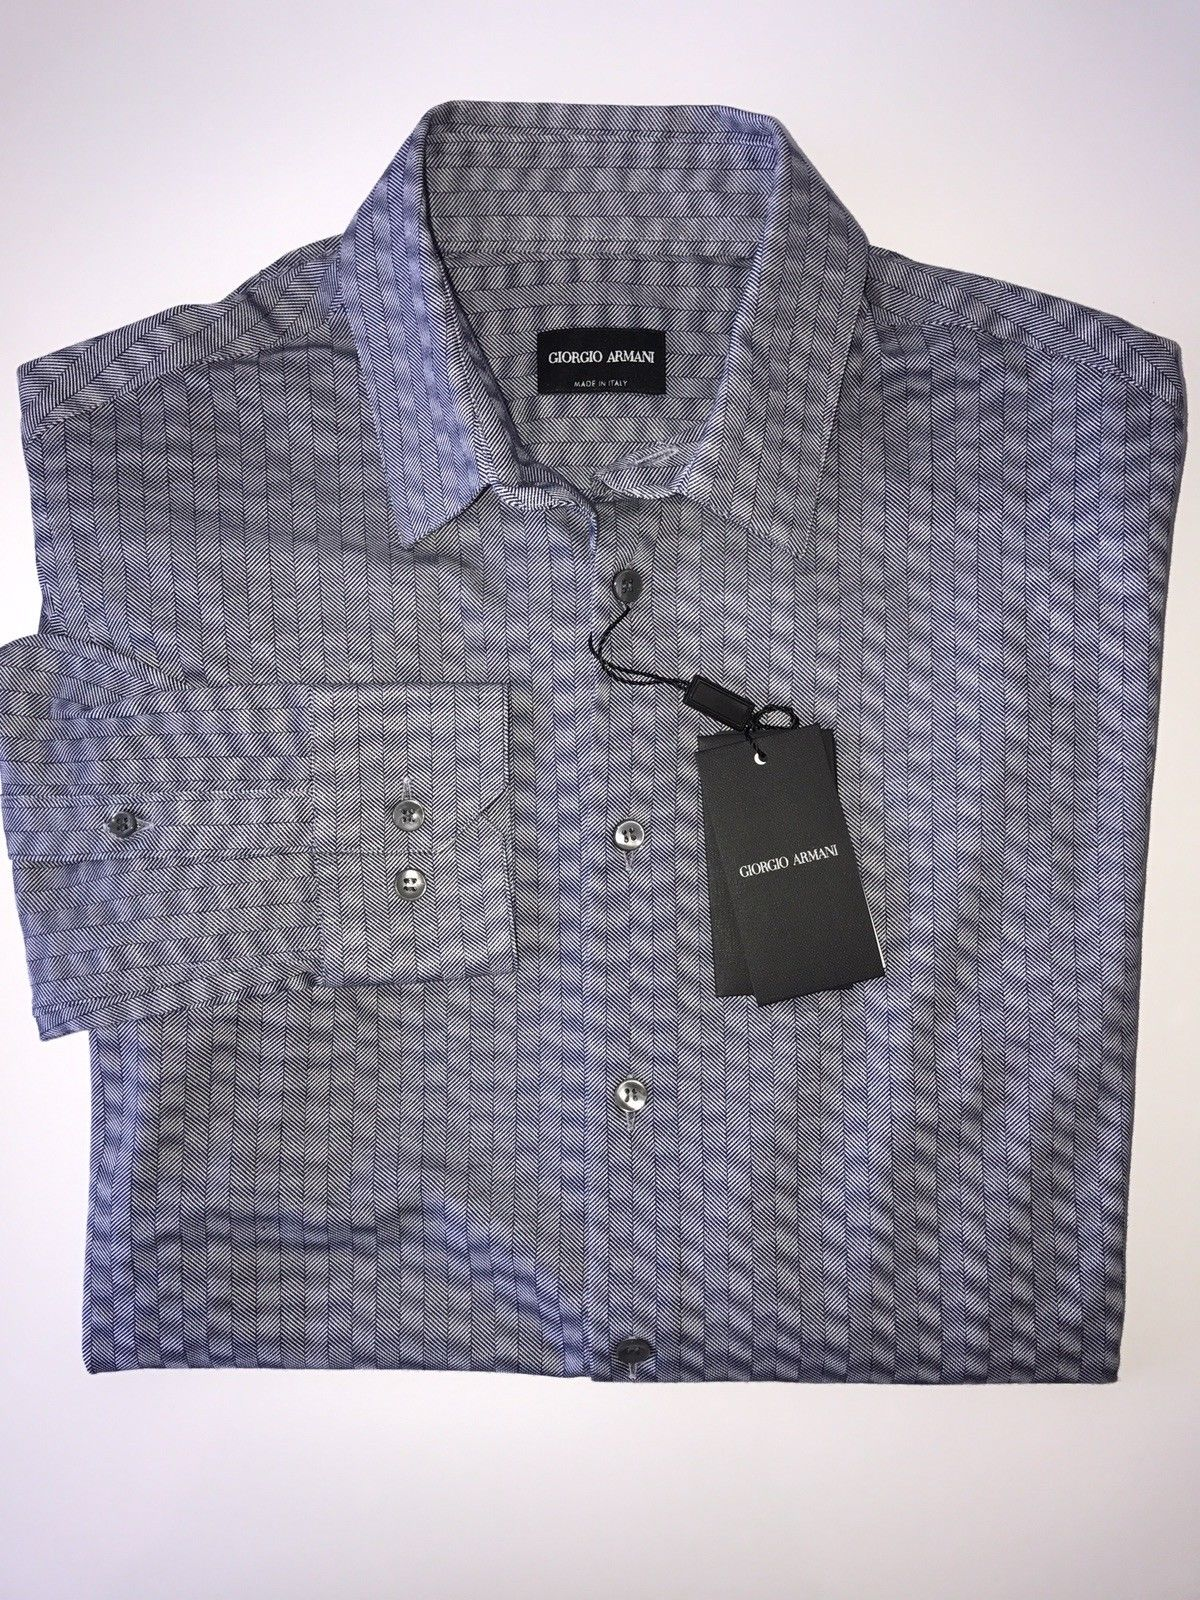 NWT $695 Giorgio Armani Italian Necked Mens Cotton Blue Dress Shirt 42 EU VSC97T